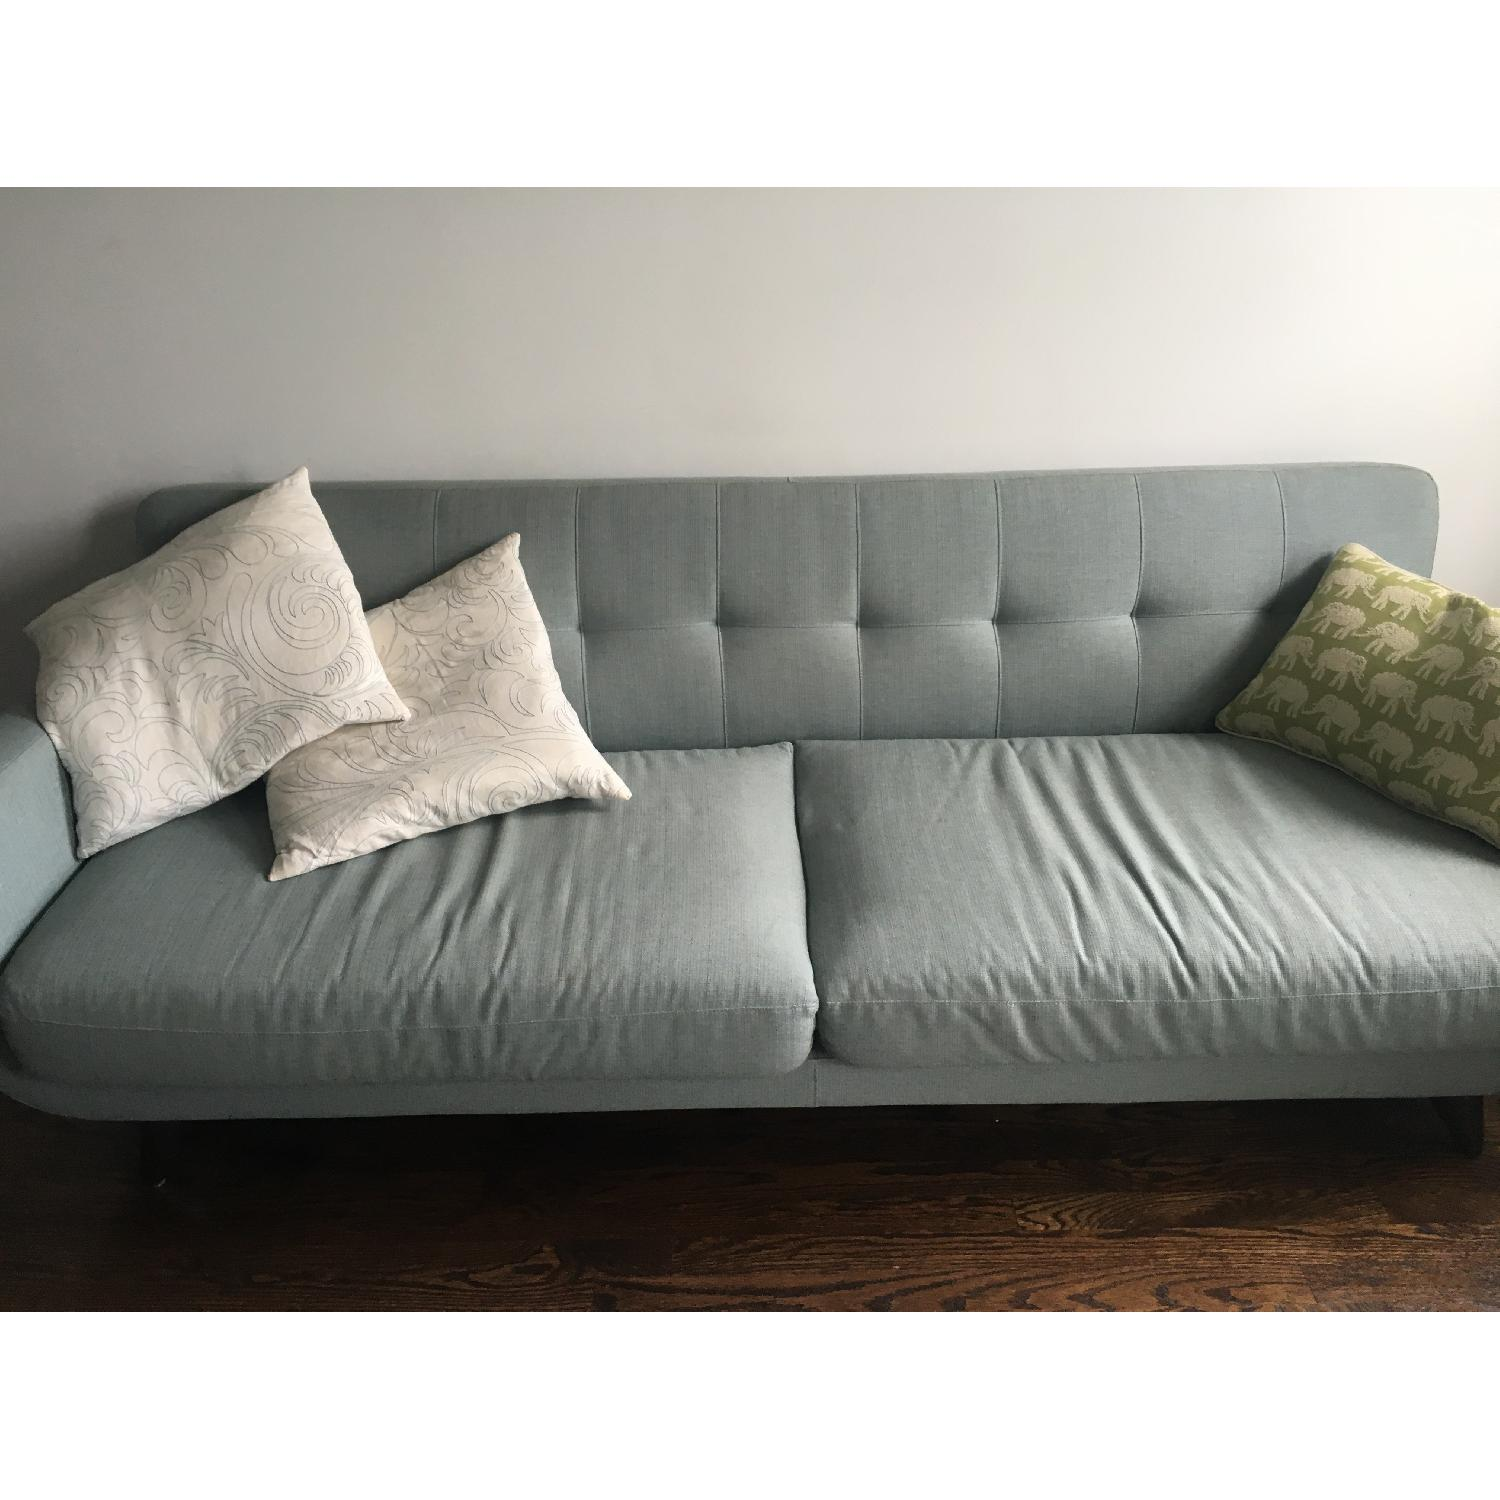 Room & Board Anson Couch - image-3